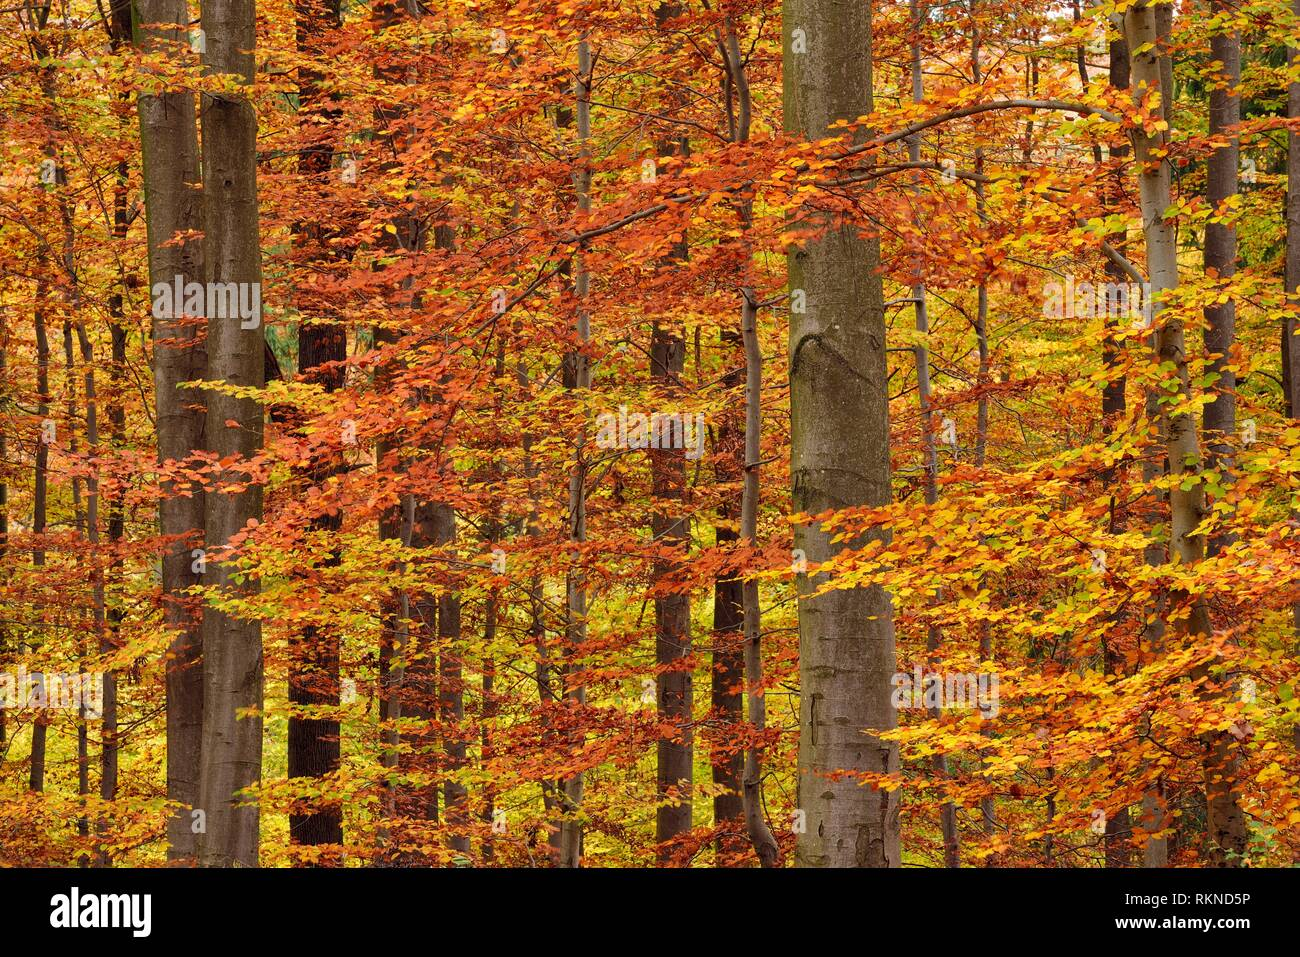 Forest in autumn colours. Bavaria, Germany. Stock Photo